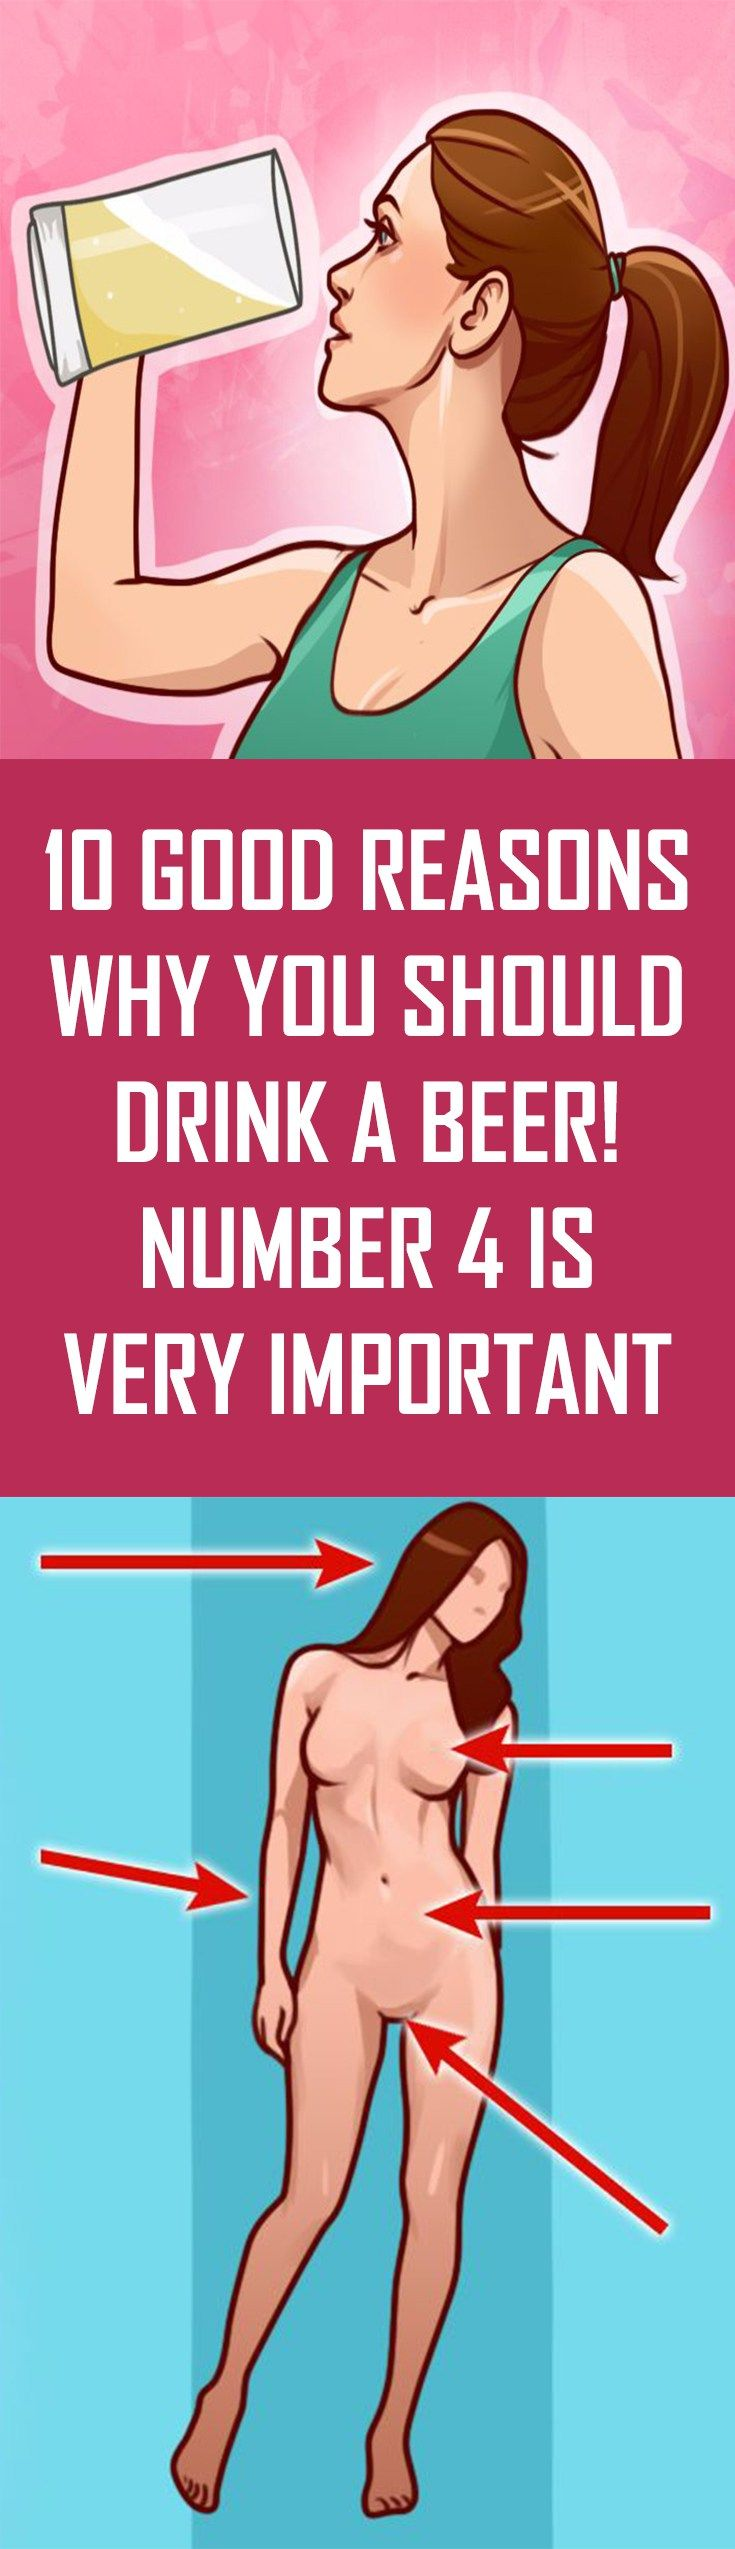 The Excessive Consumption Of Alcohol Negatively Affects The Body And